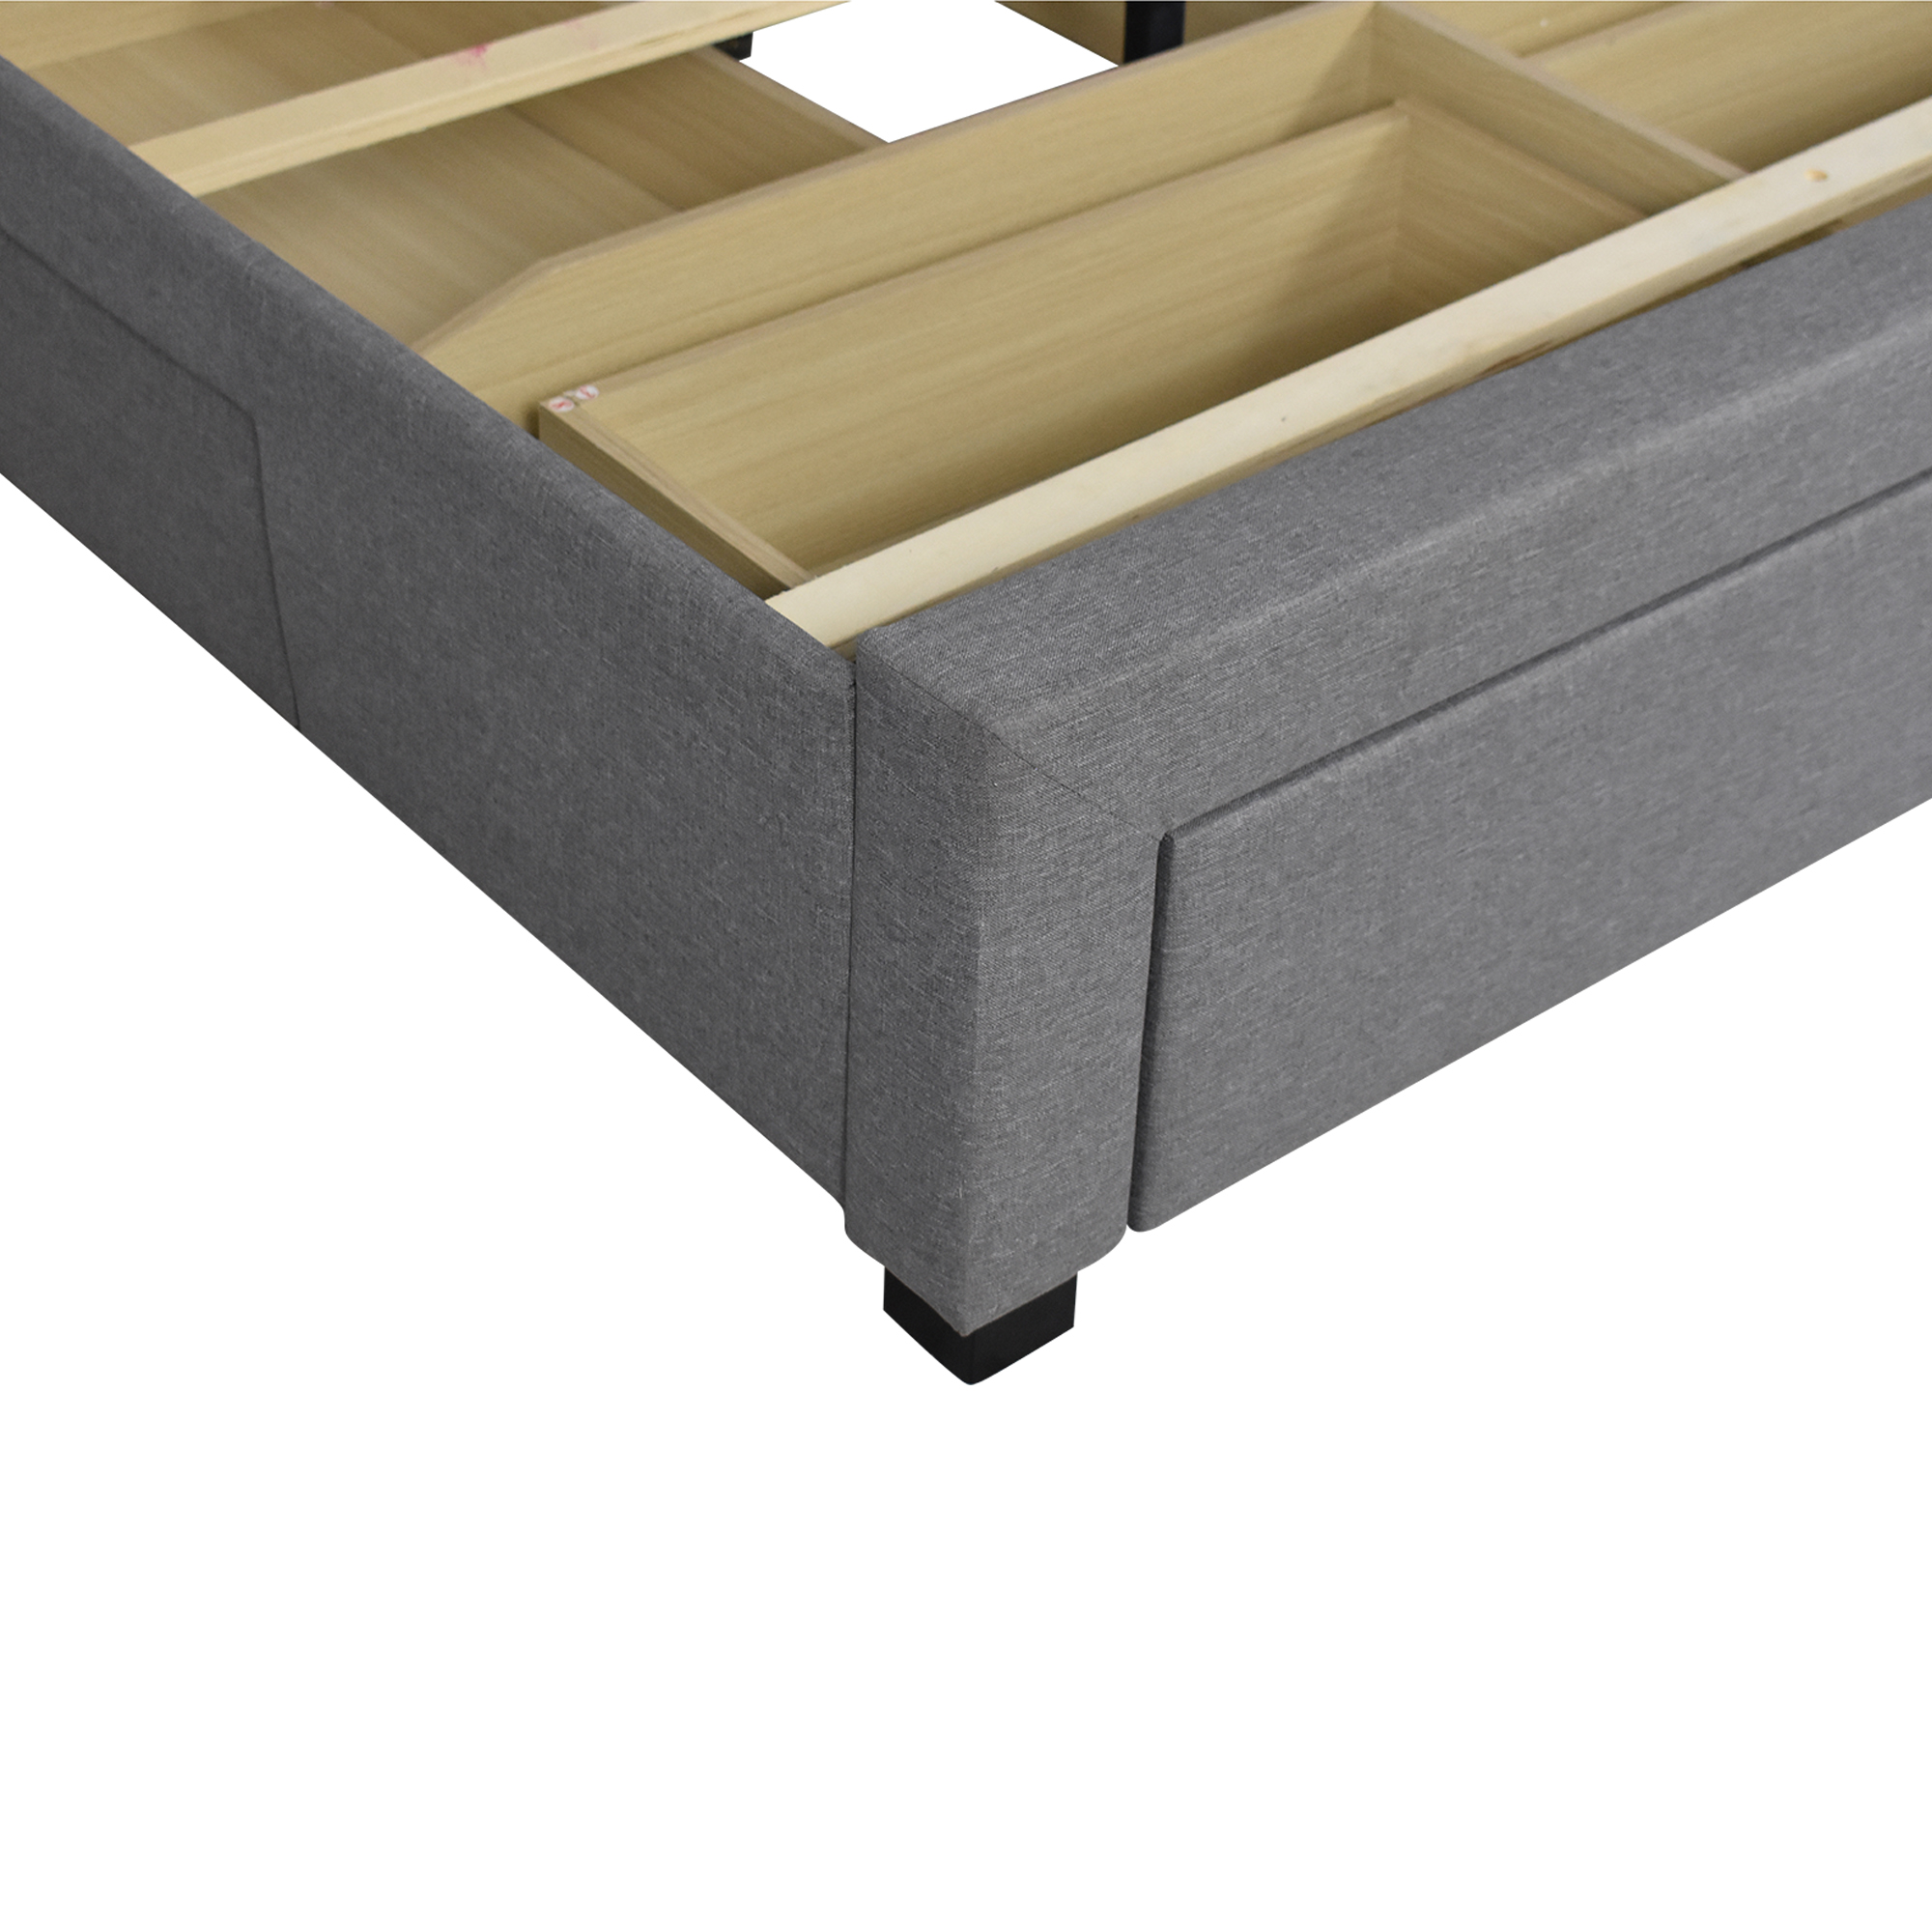 Strick & Bolton Strick & Bolton Roth Grey Linen Wingback Storage Bed used